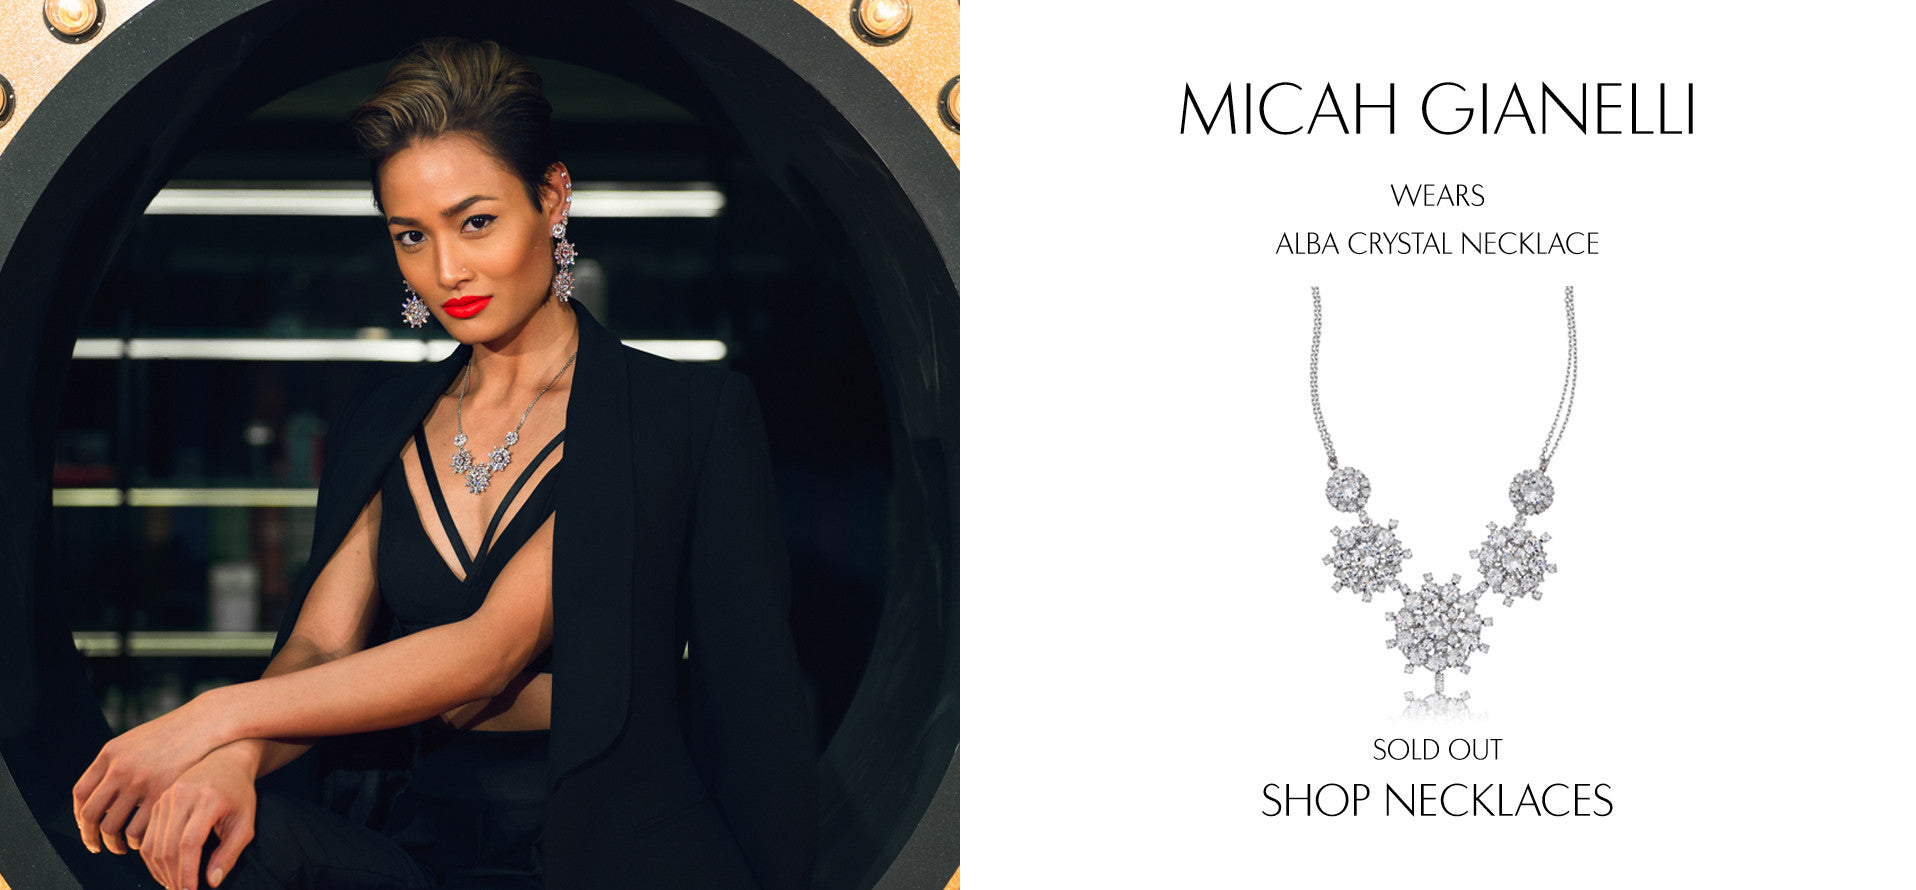 MicahGianneli - Fashion Blog by Micah Gianneli wears Sarina Suriano Alba crystal necklace